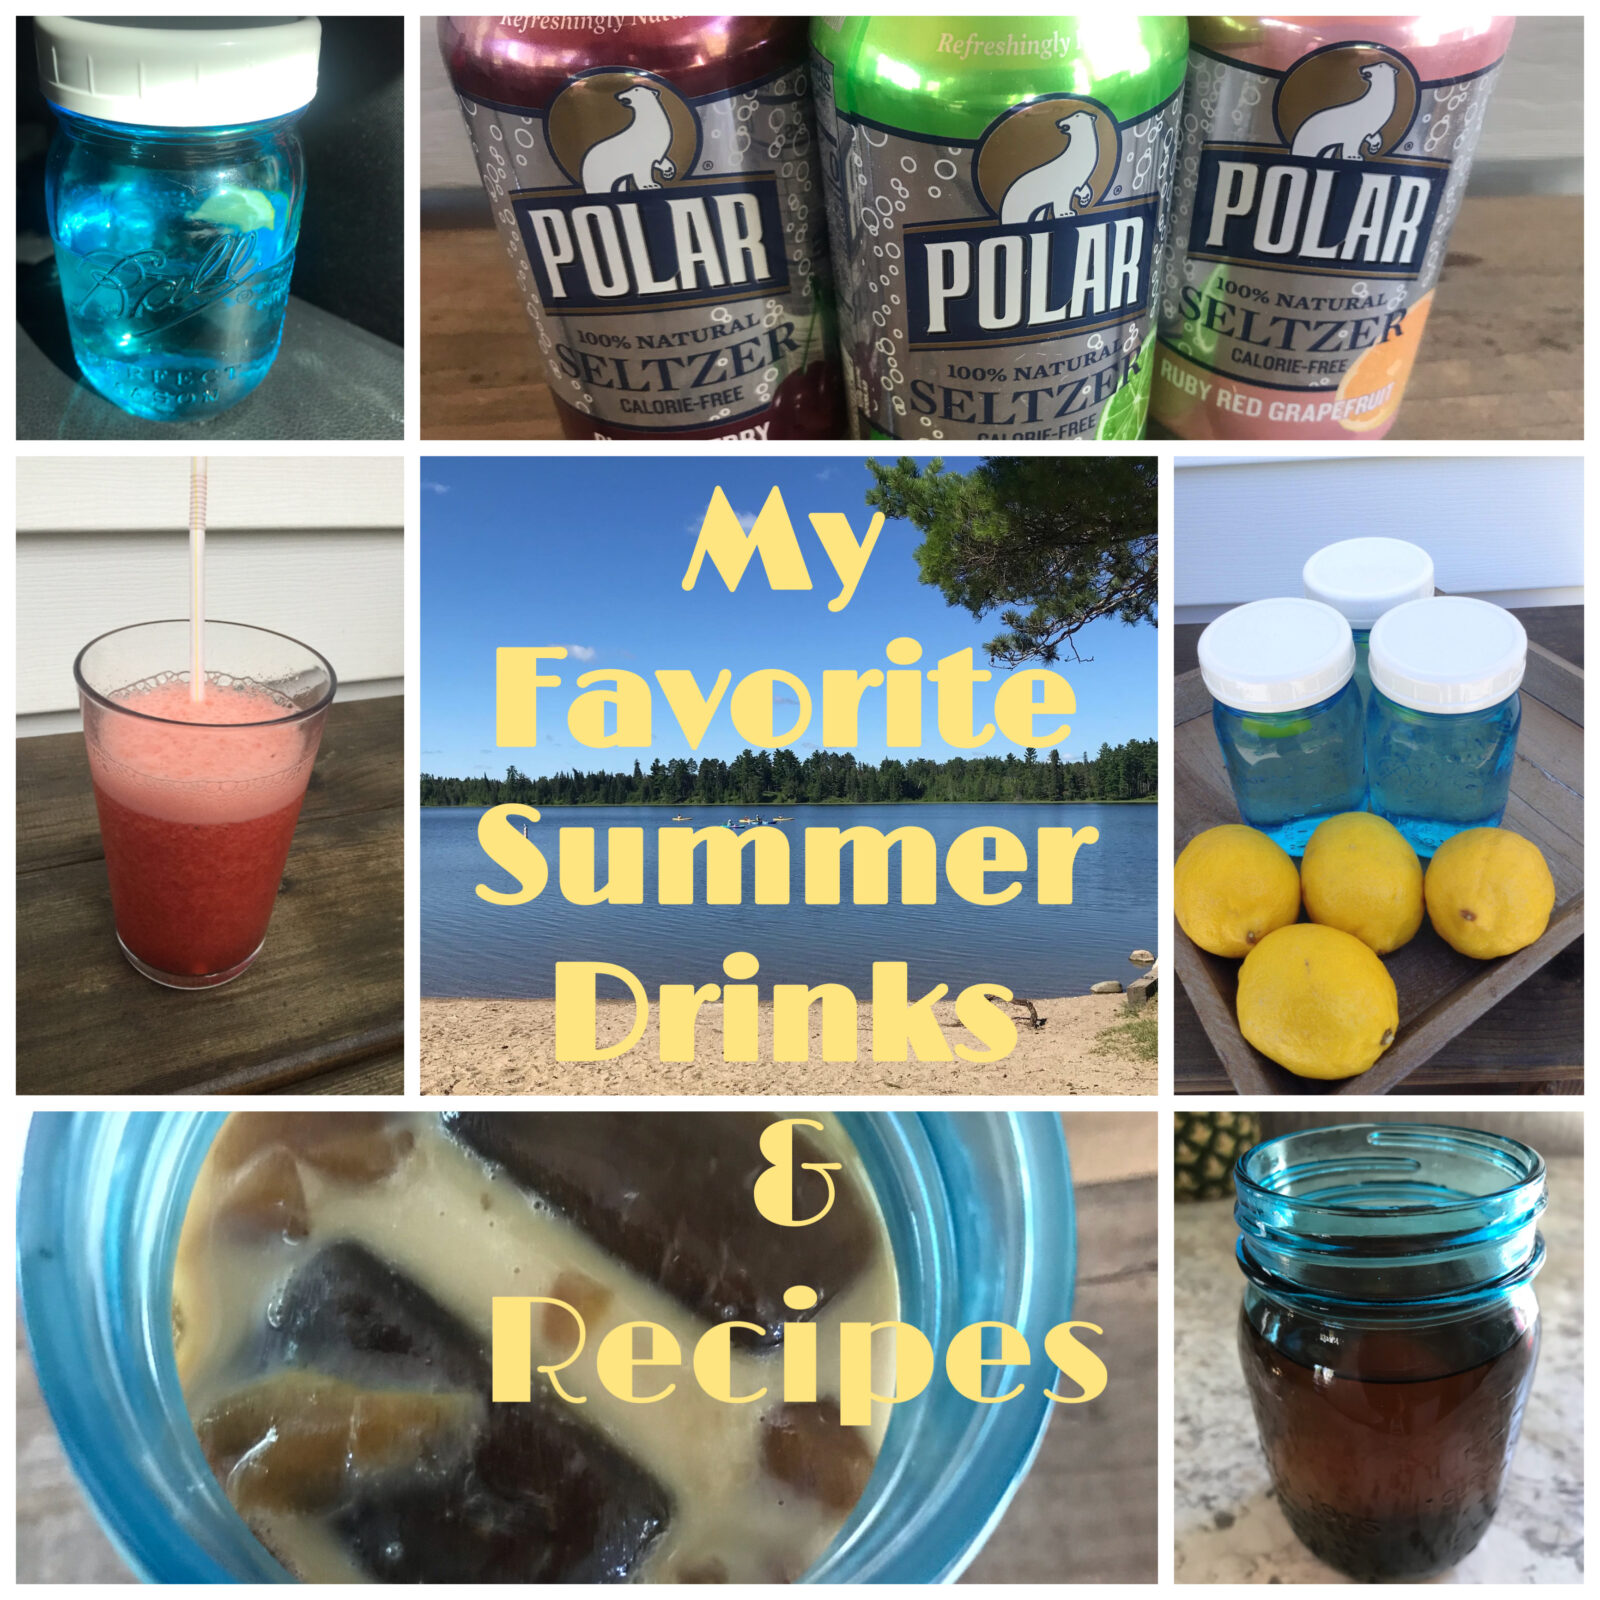 My Favorite Summer Drinks